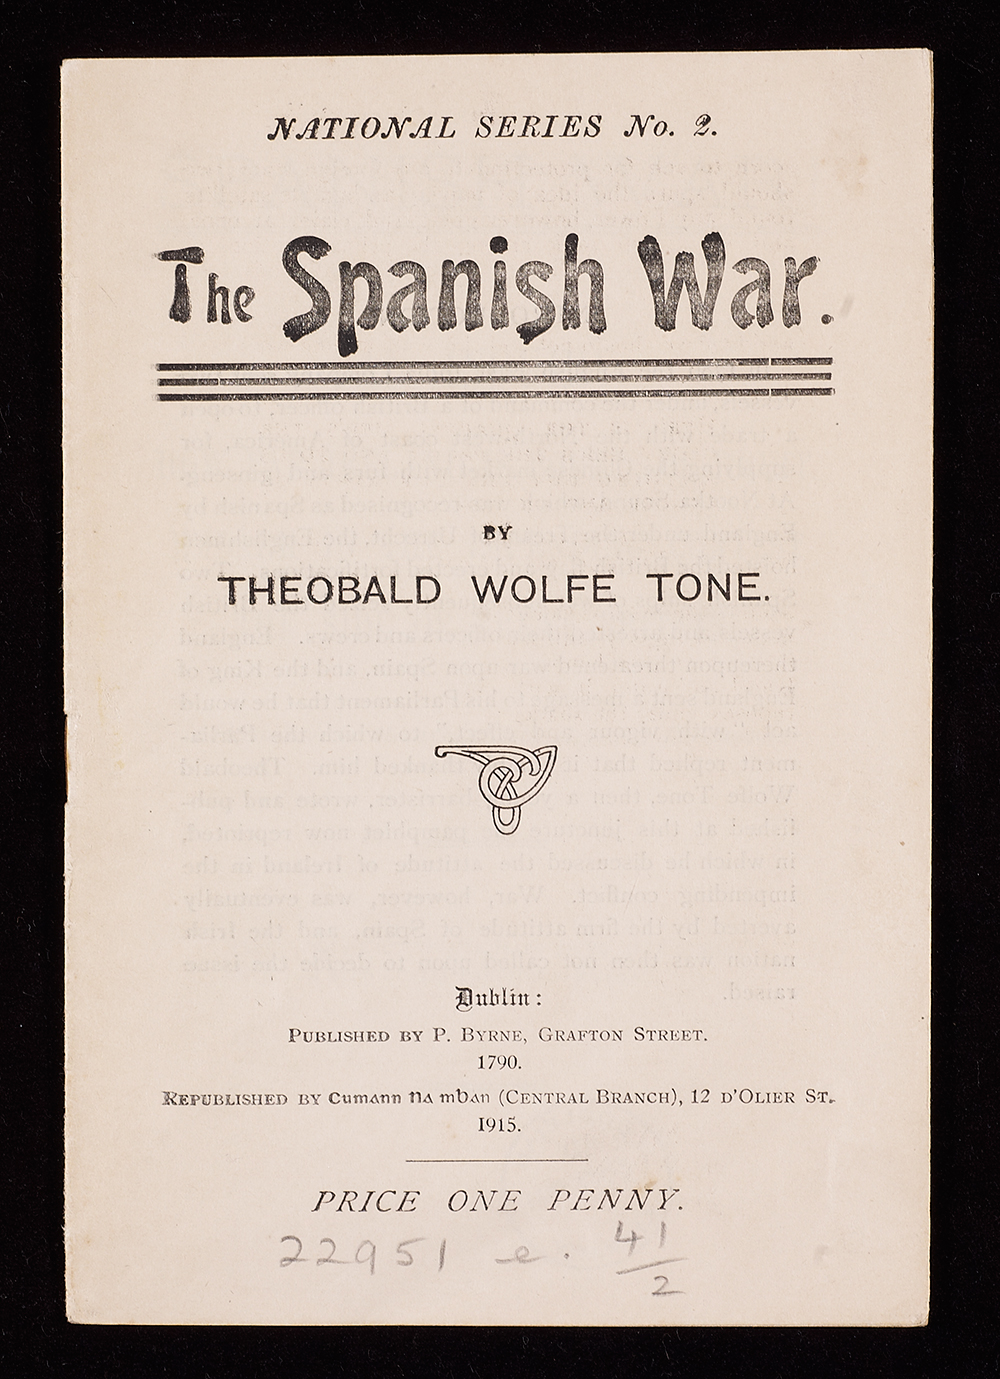 The Spanish War pamphlet